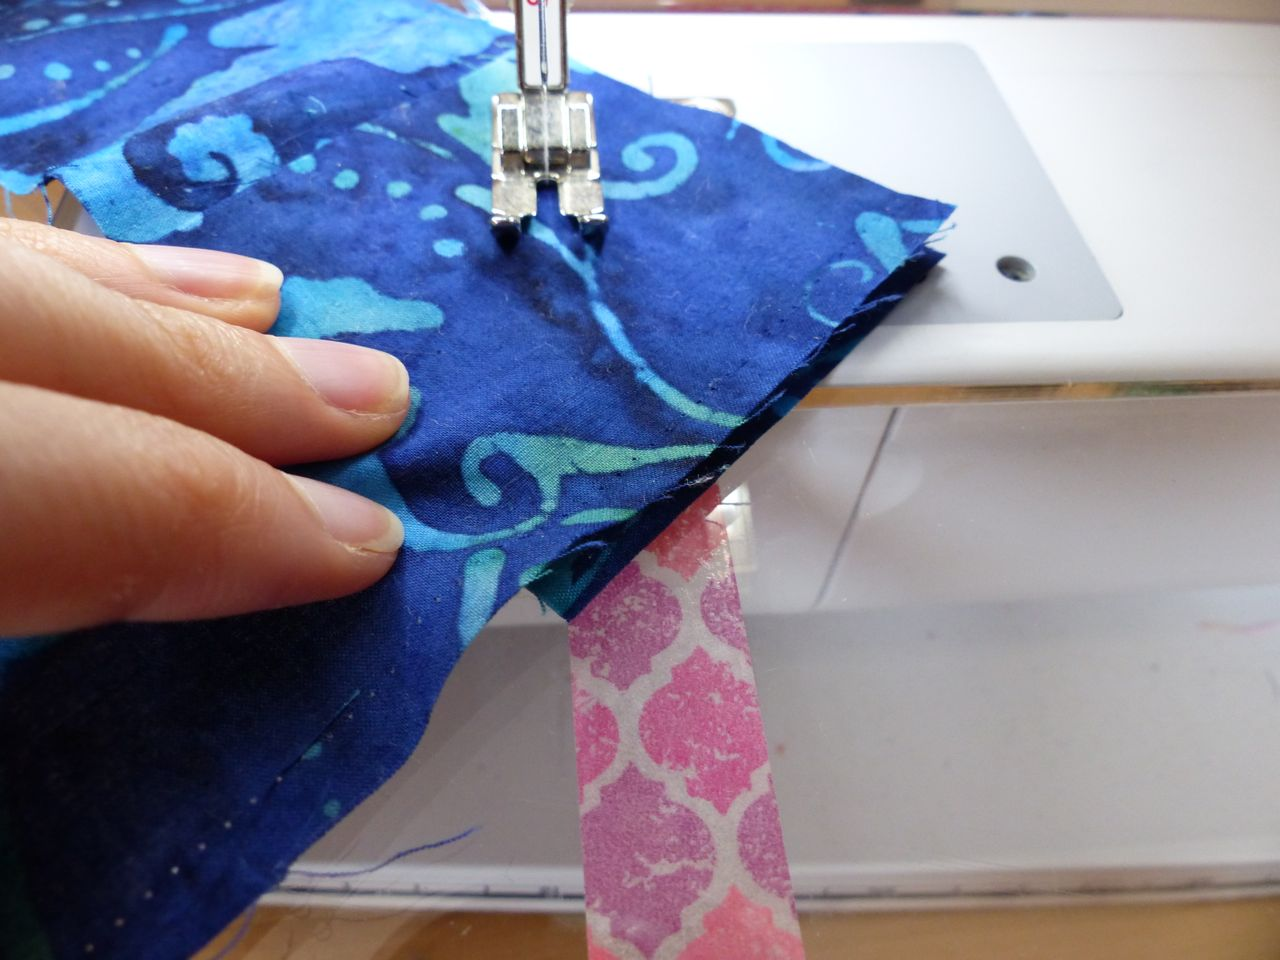 A tip for piecing bindings